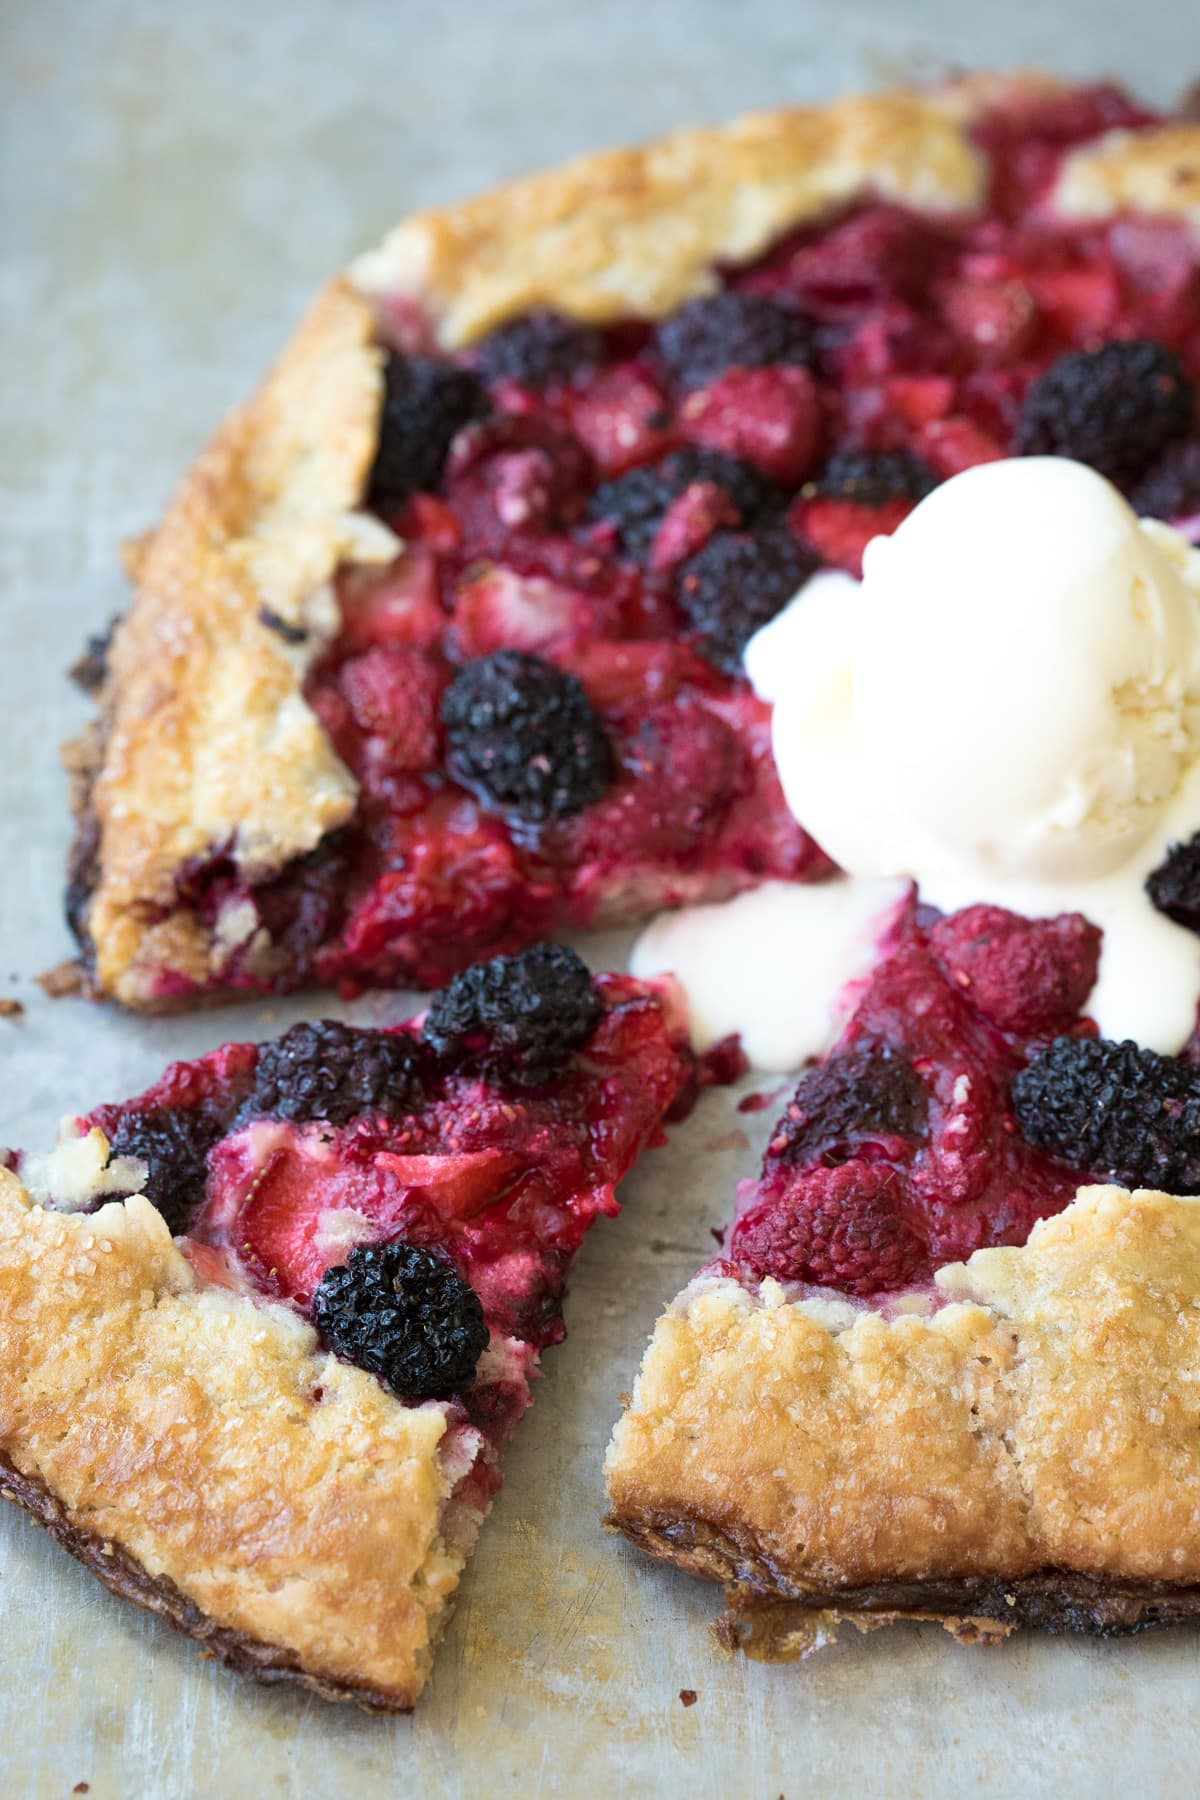 Summer dessert at its finest - mixed berries piled high over a flaky, buttery gluten-free pie crust, with a sweet cream cheese layer in the middle.